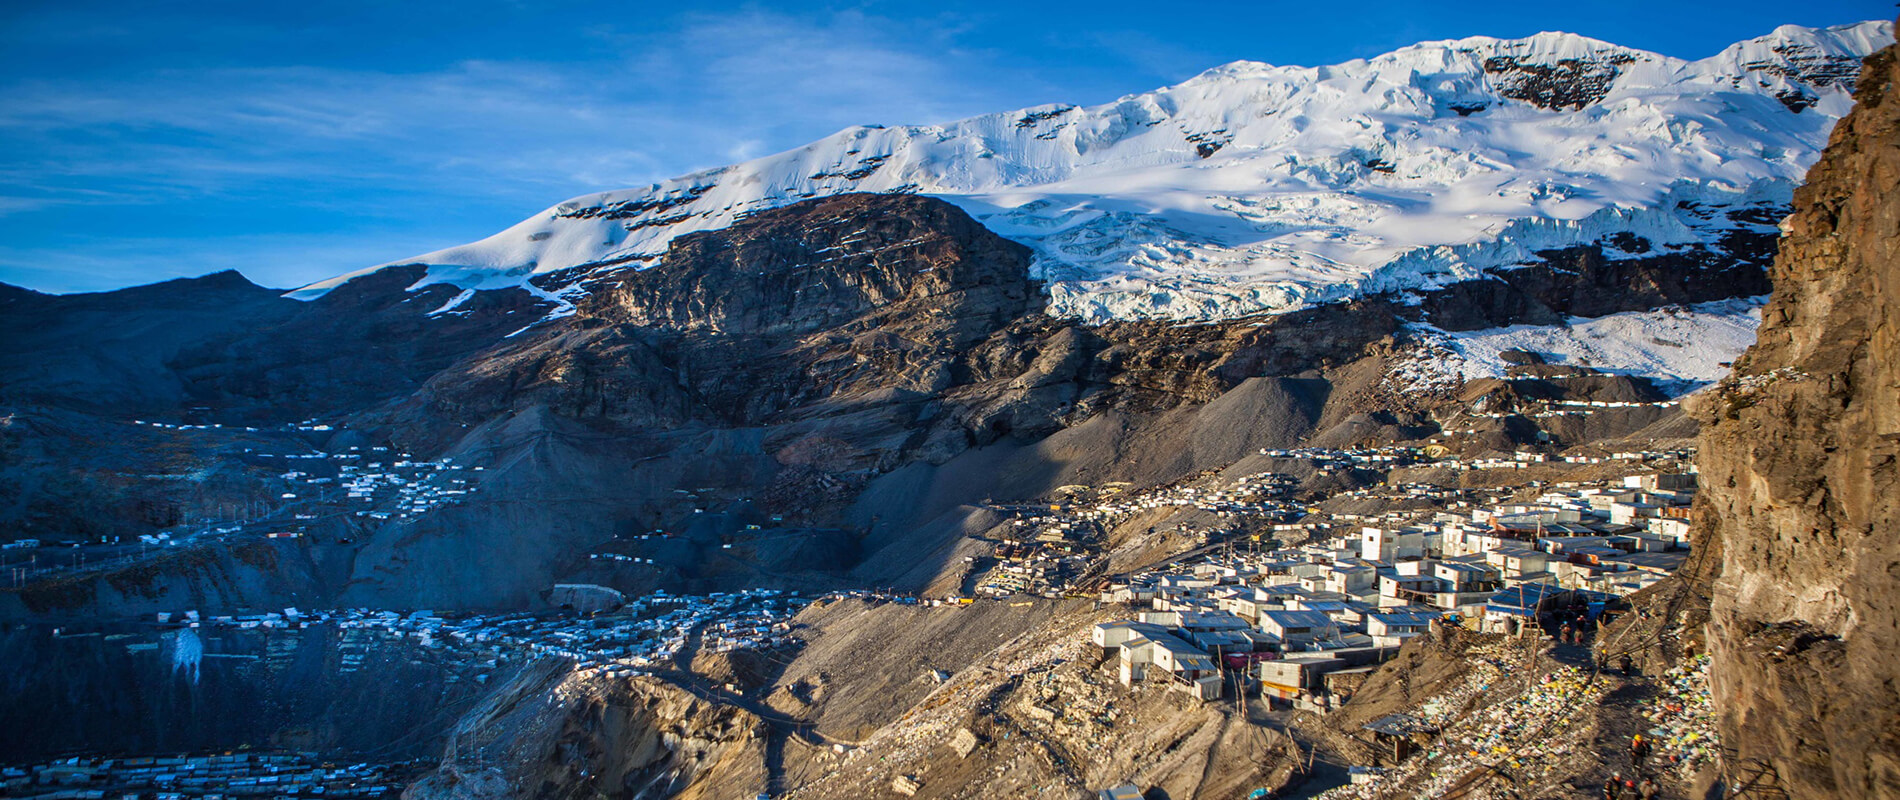 La Rinconada, one of the most hellish places on the planet